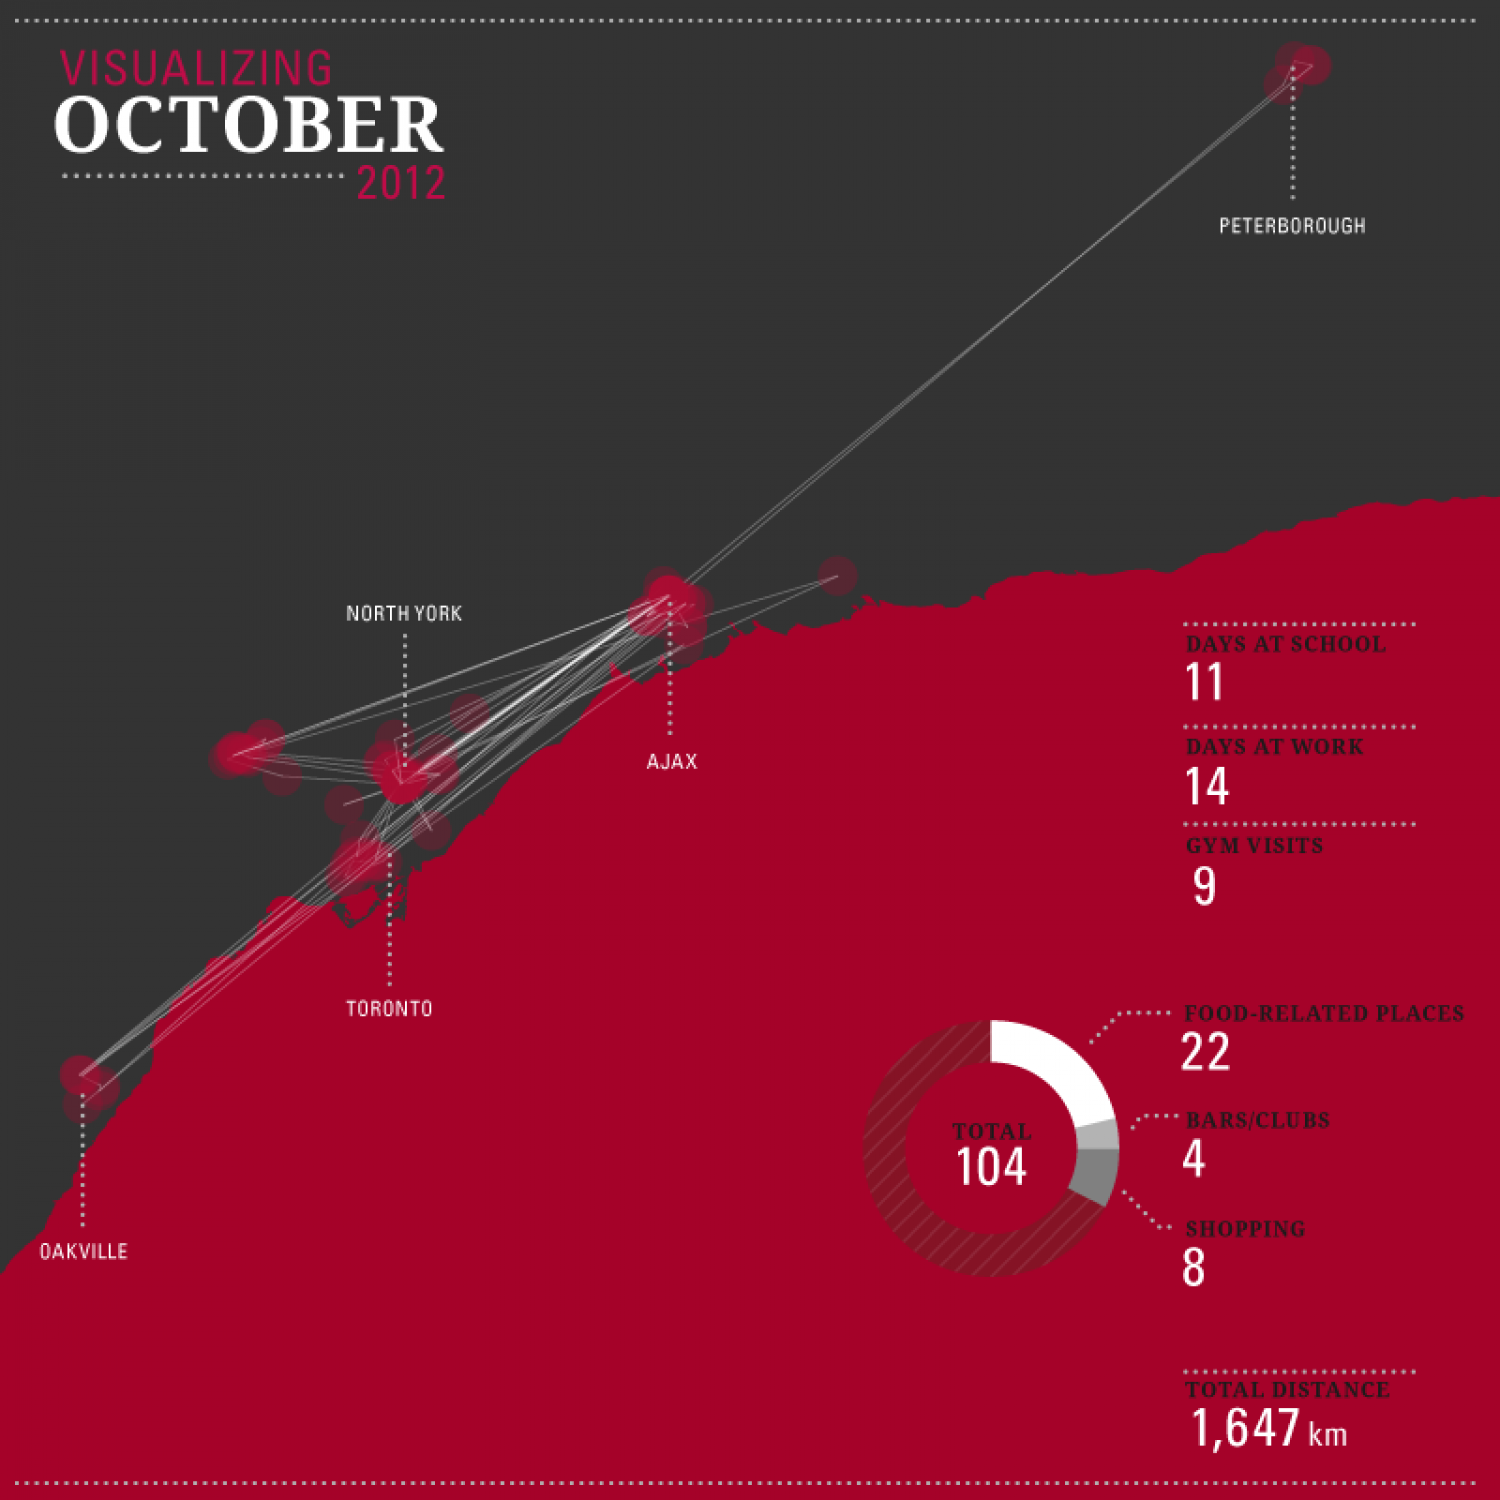 Visualizing October Infographic